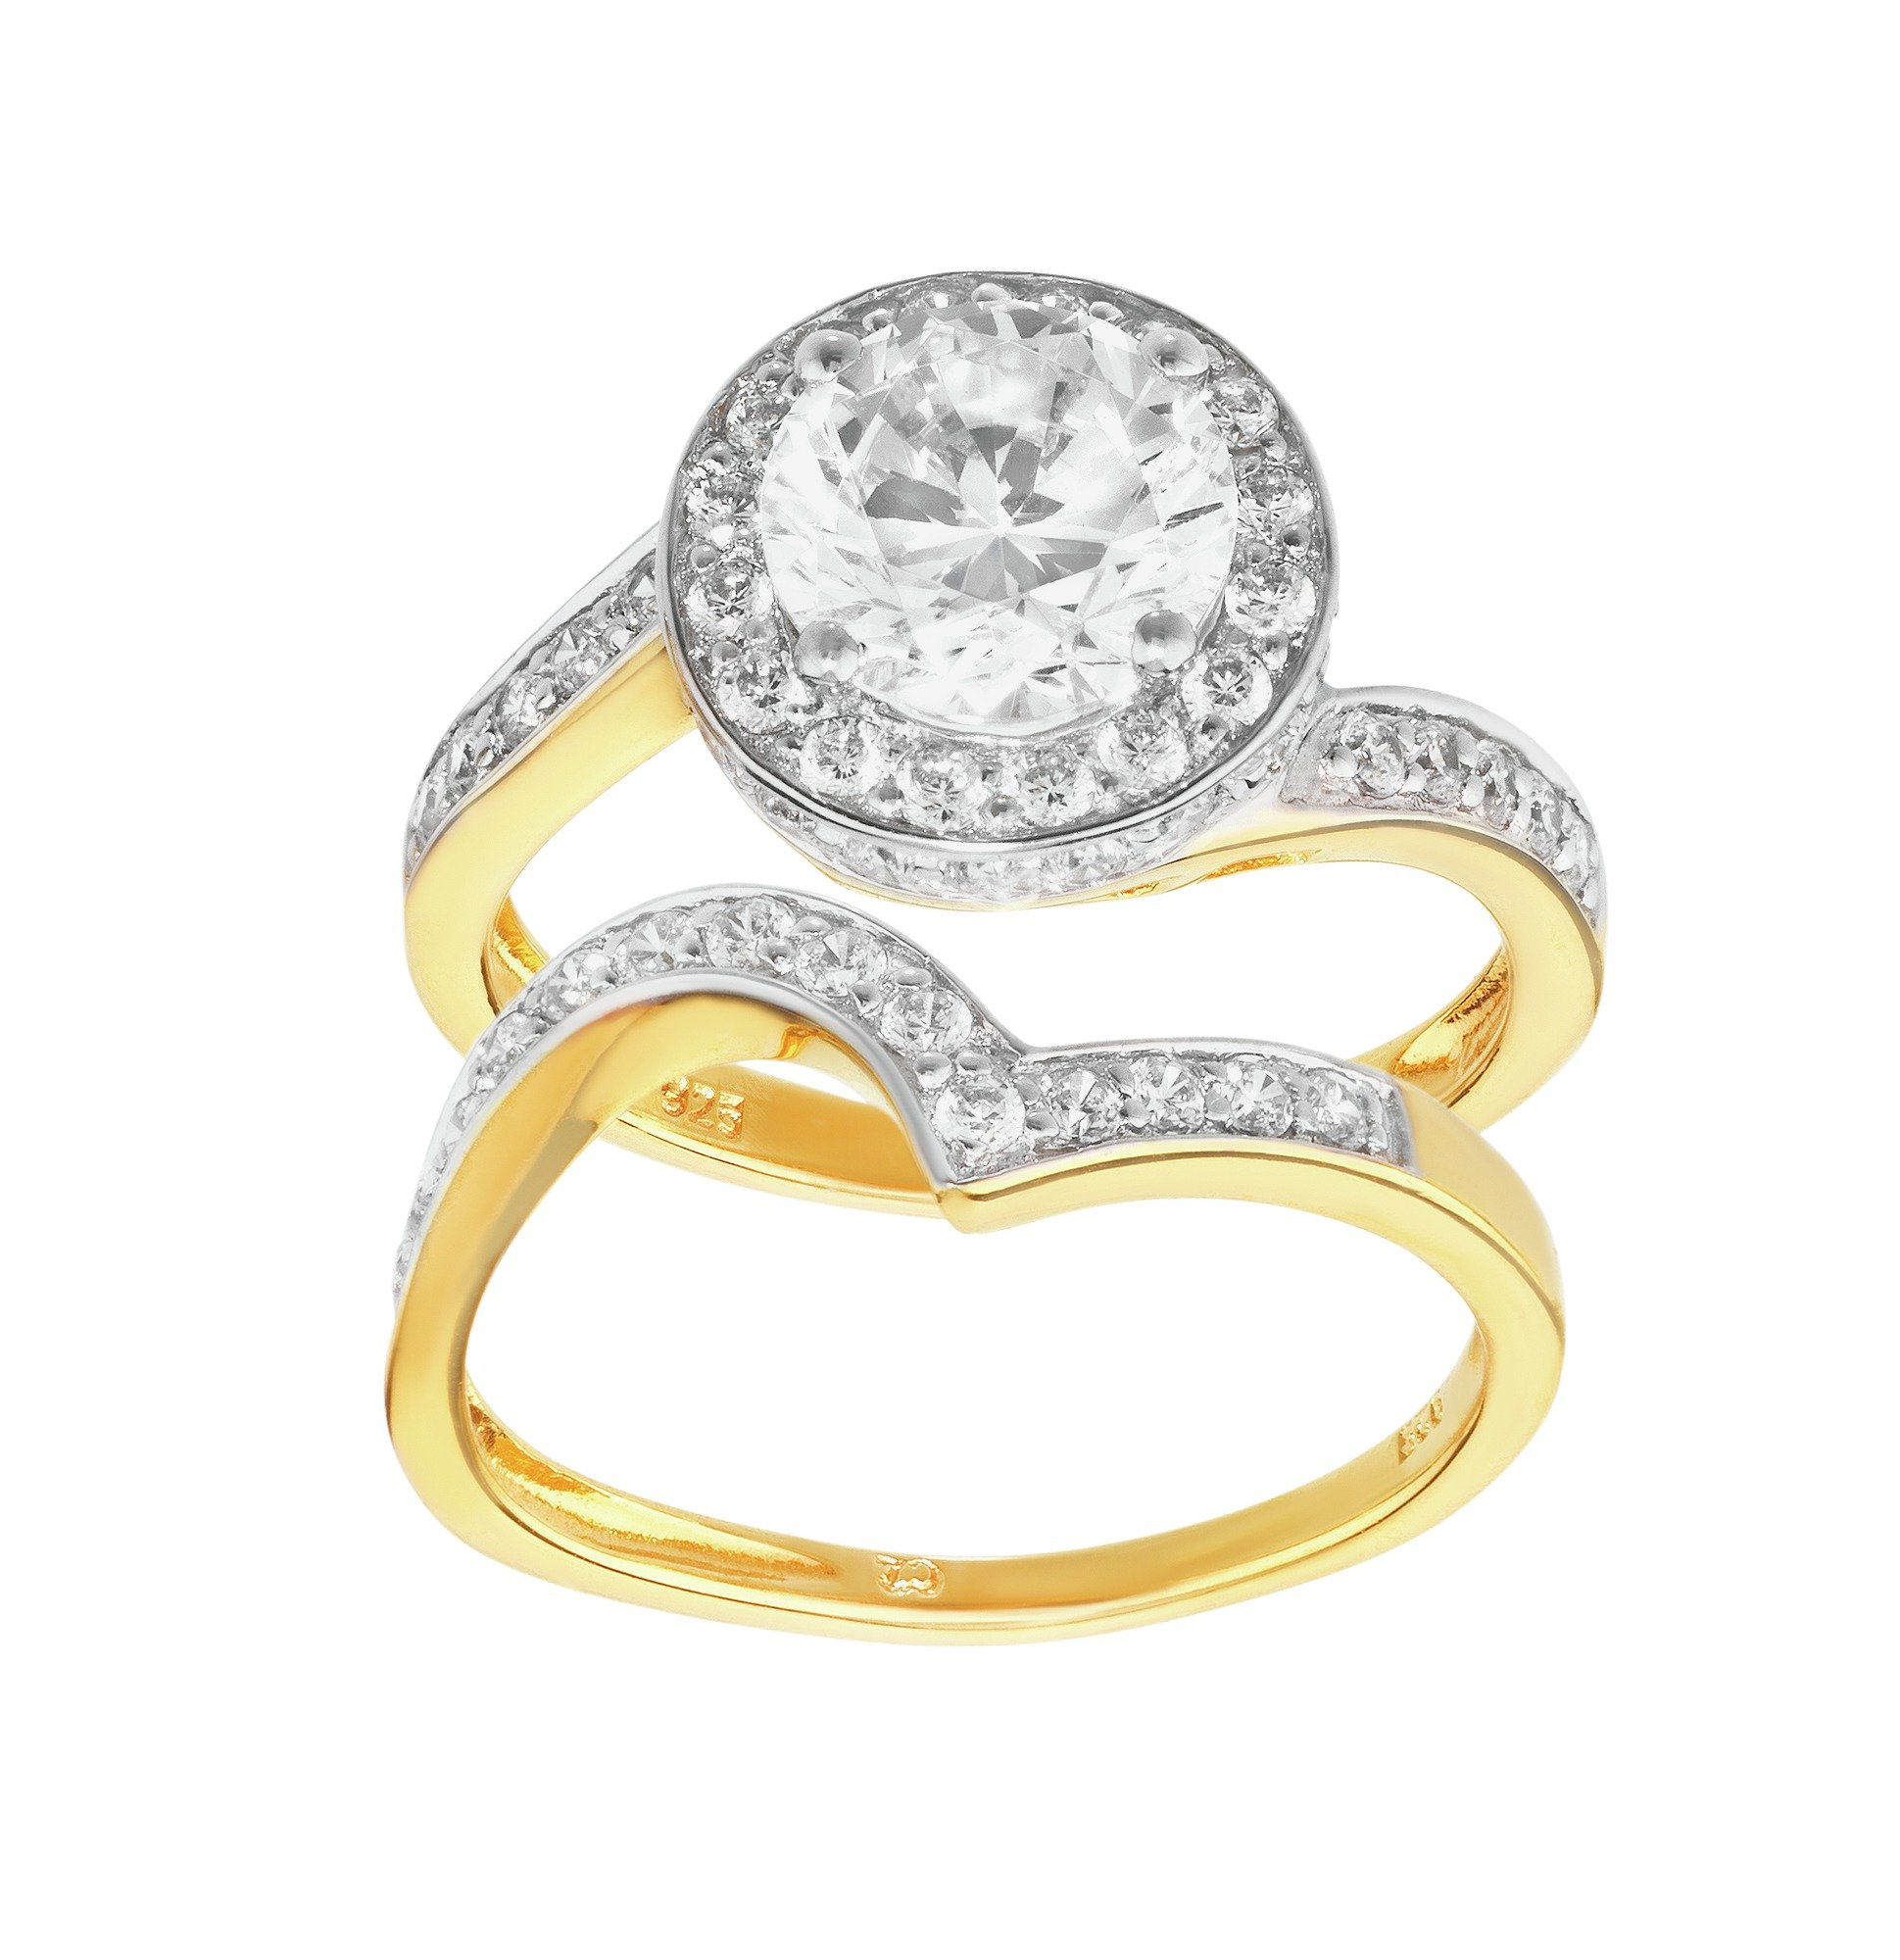 Brandcouture for Low cost wedding ring sets